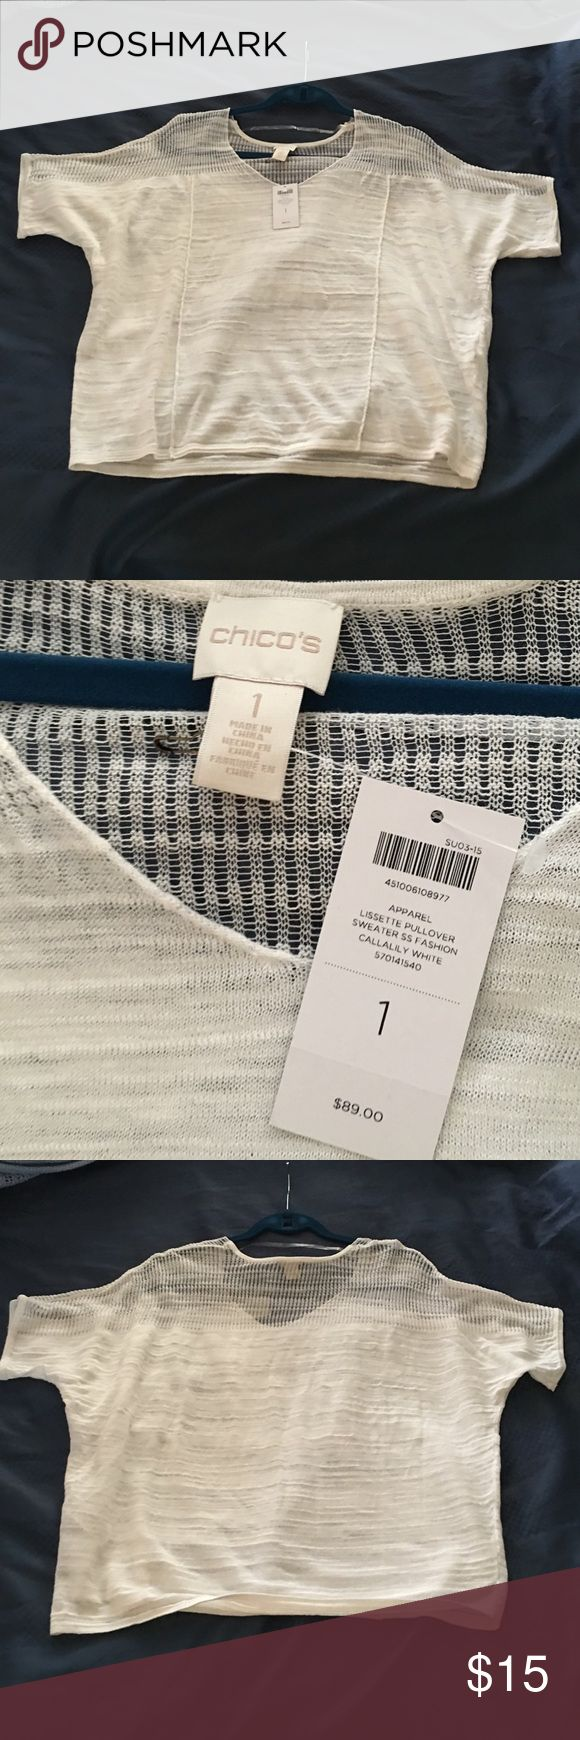 Chico's ss light sweater top. NWT. Chico size 1 Chico's short sleeve sweater top.  Chico size 1. Approx m/l.  Tag says Lisette pullover in callalily white color.   It's an off white color. New with tags.  Excellent condition. Chico's Tops